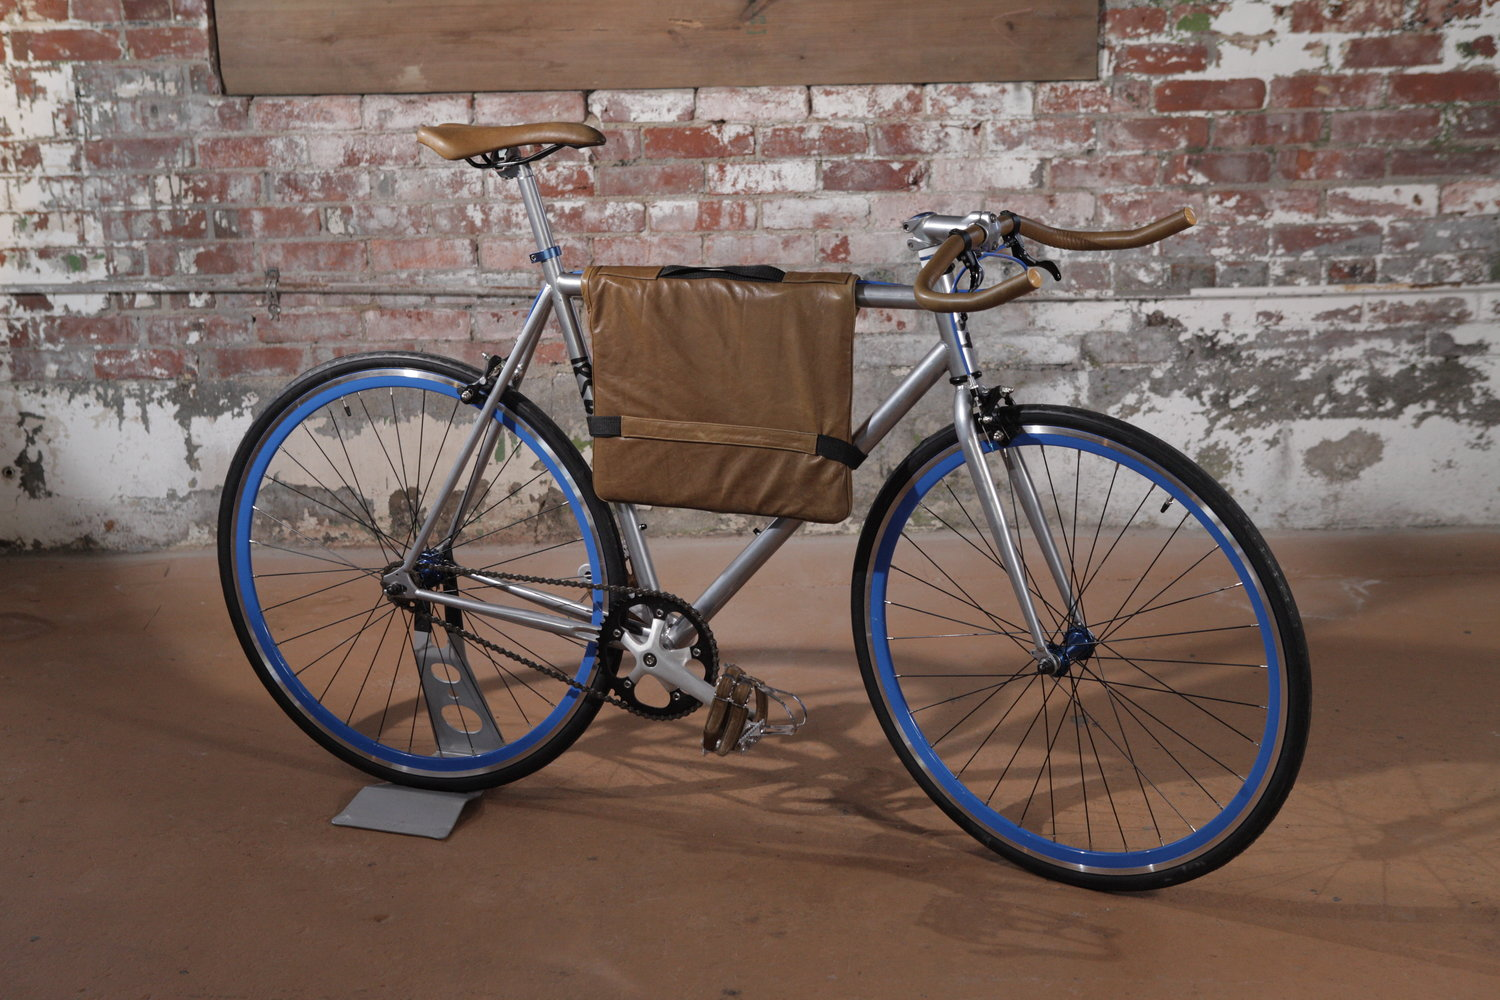 The Garrison model, shown with matching leather frame bag.